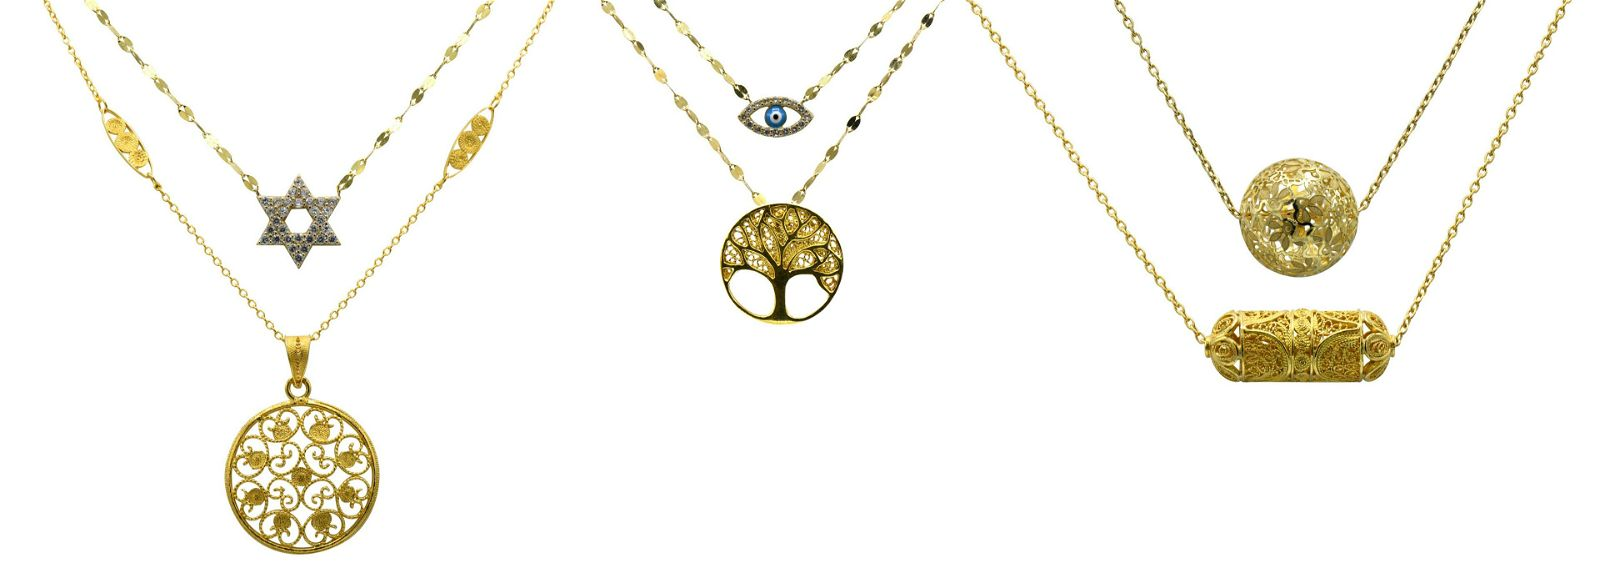 Group of Yellow Gold Filigree Necklaces